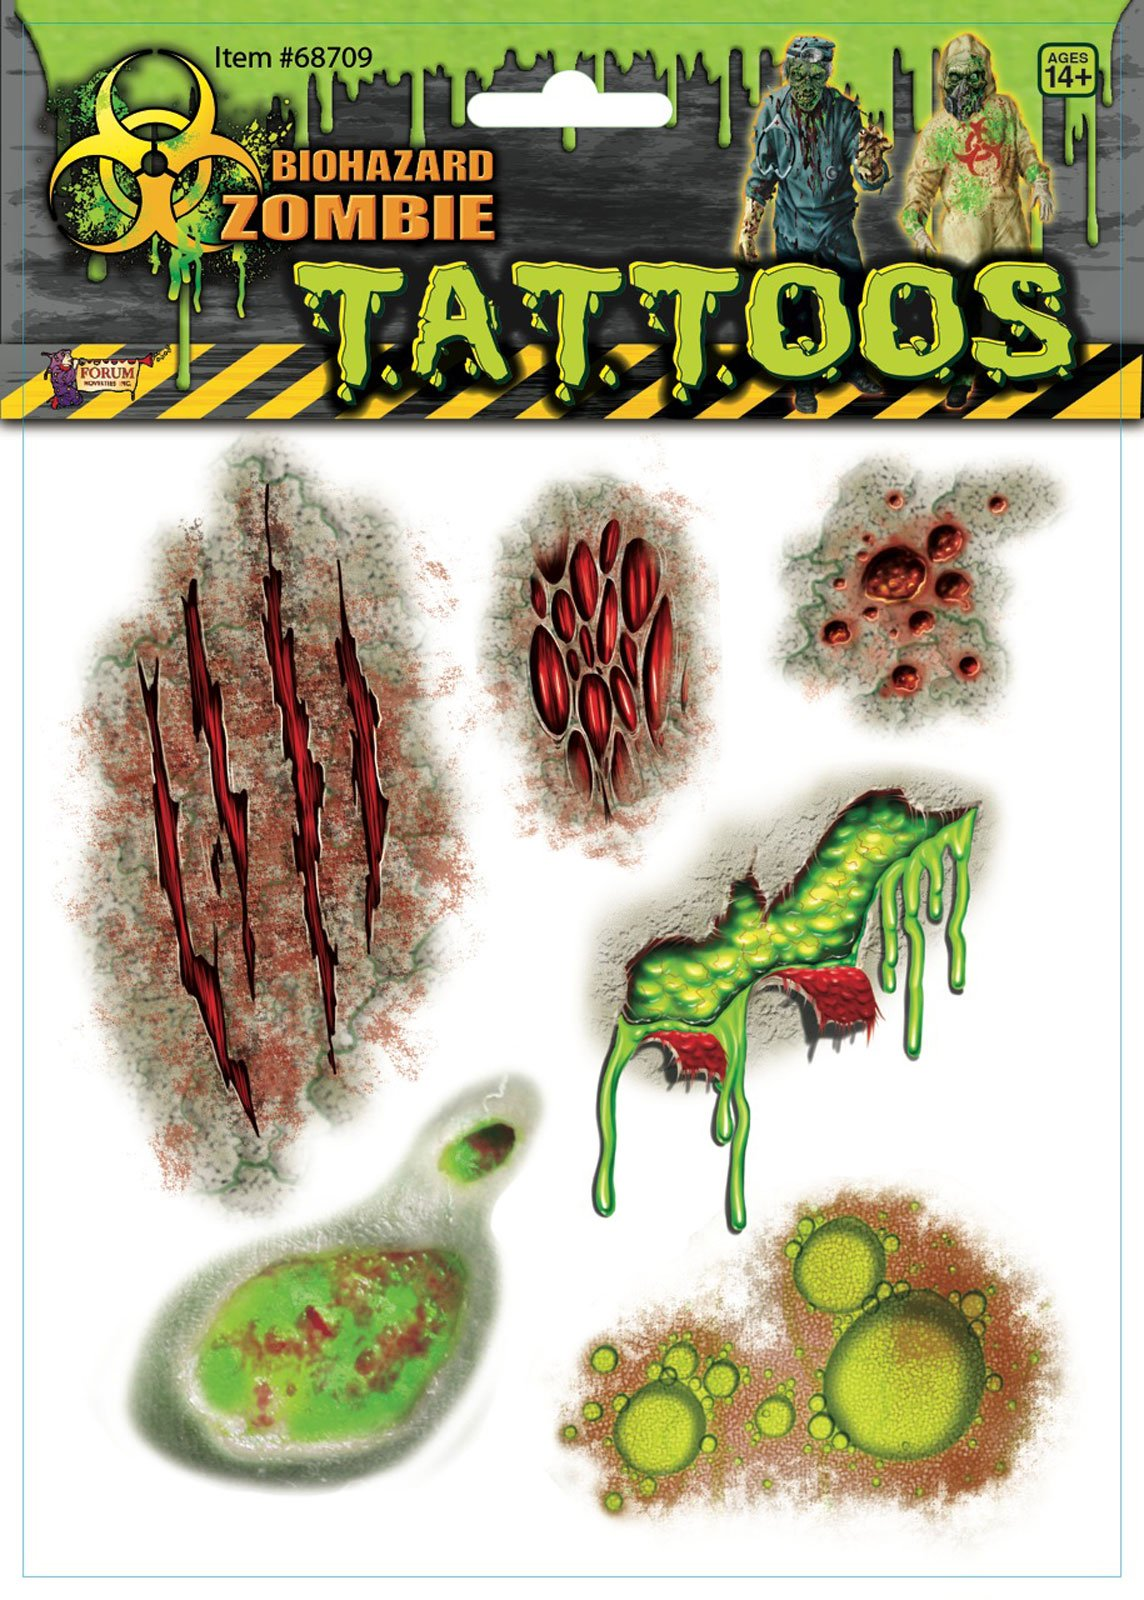 Biohazard Zombie Mutant Body Part Tattoos